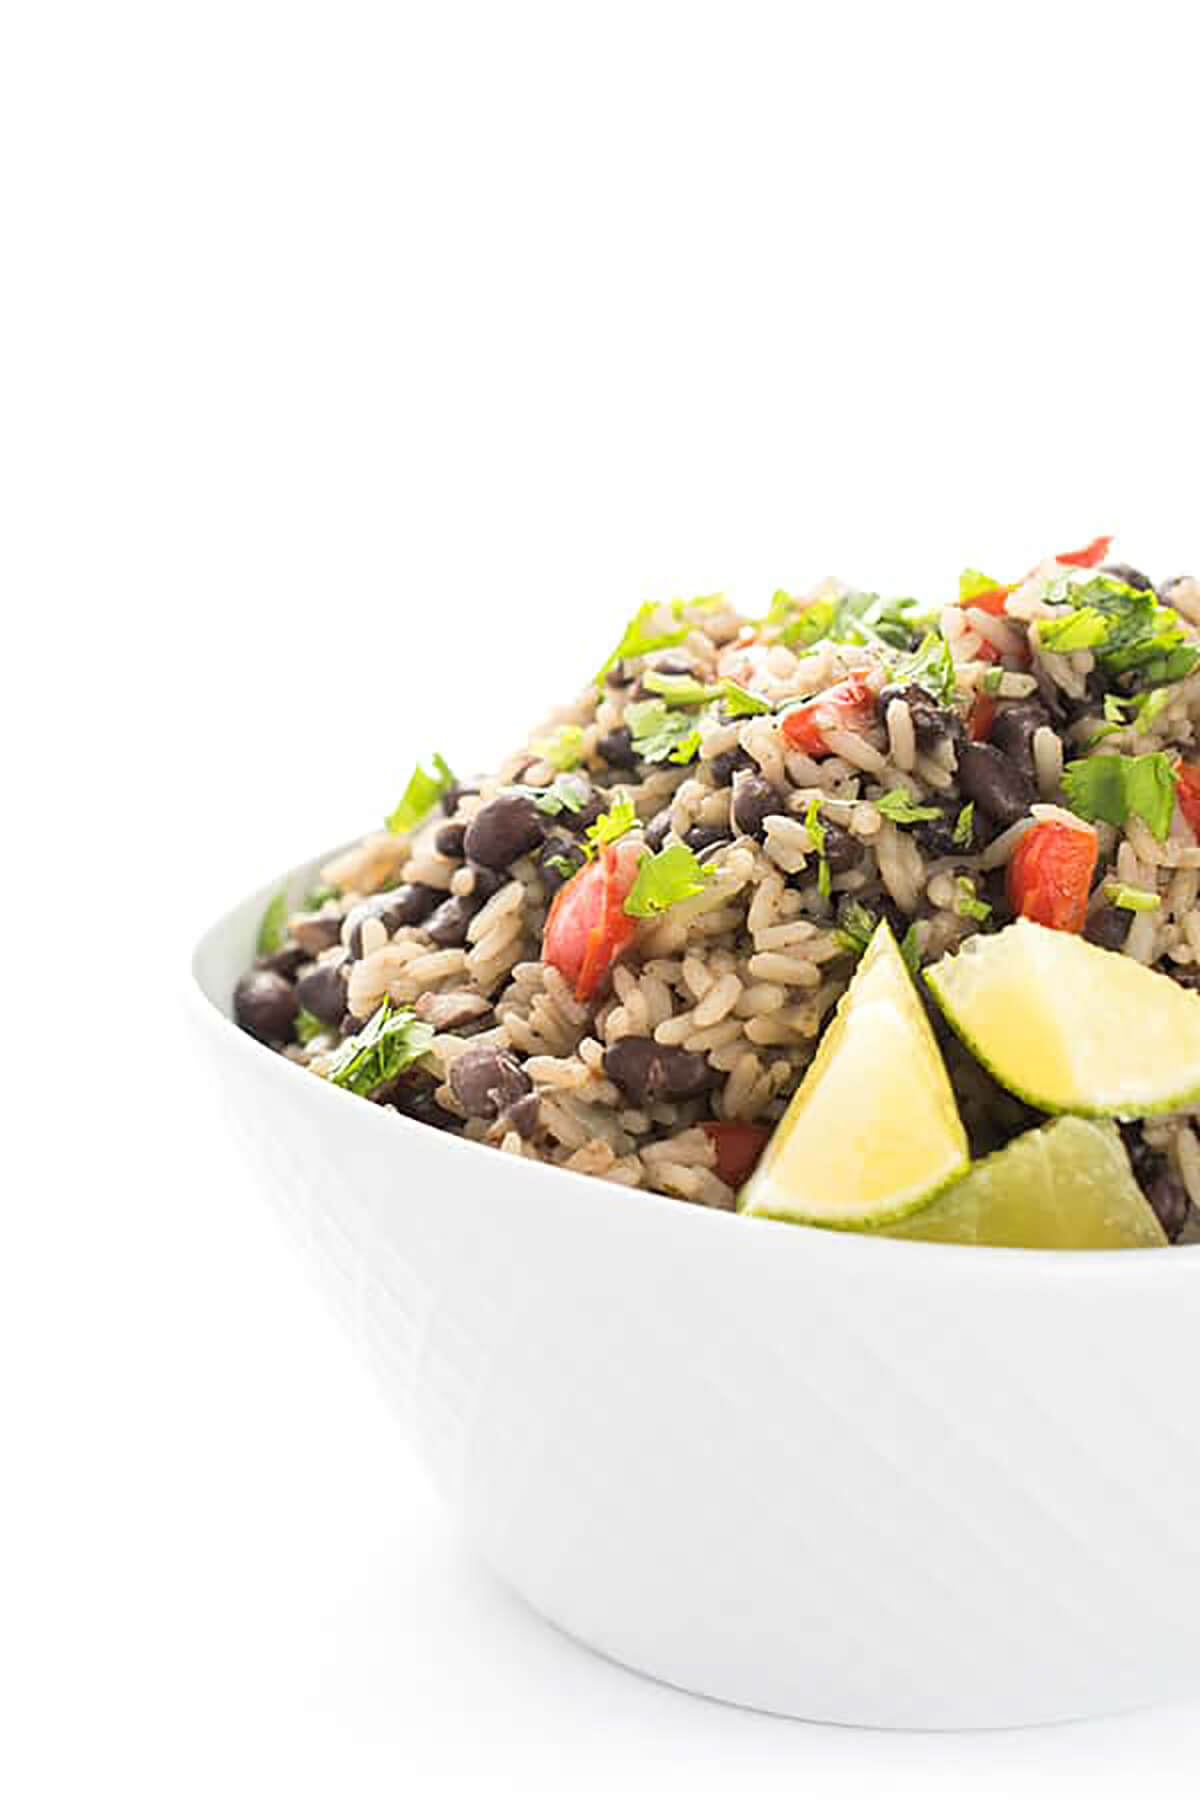 traditional cuban black beans and rice in a dish